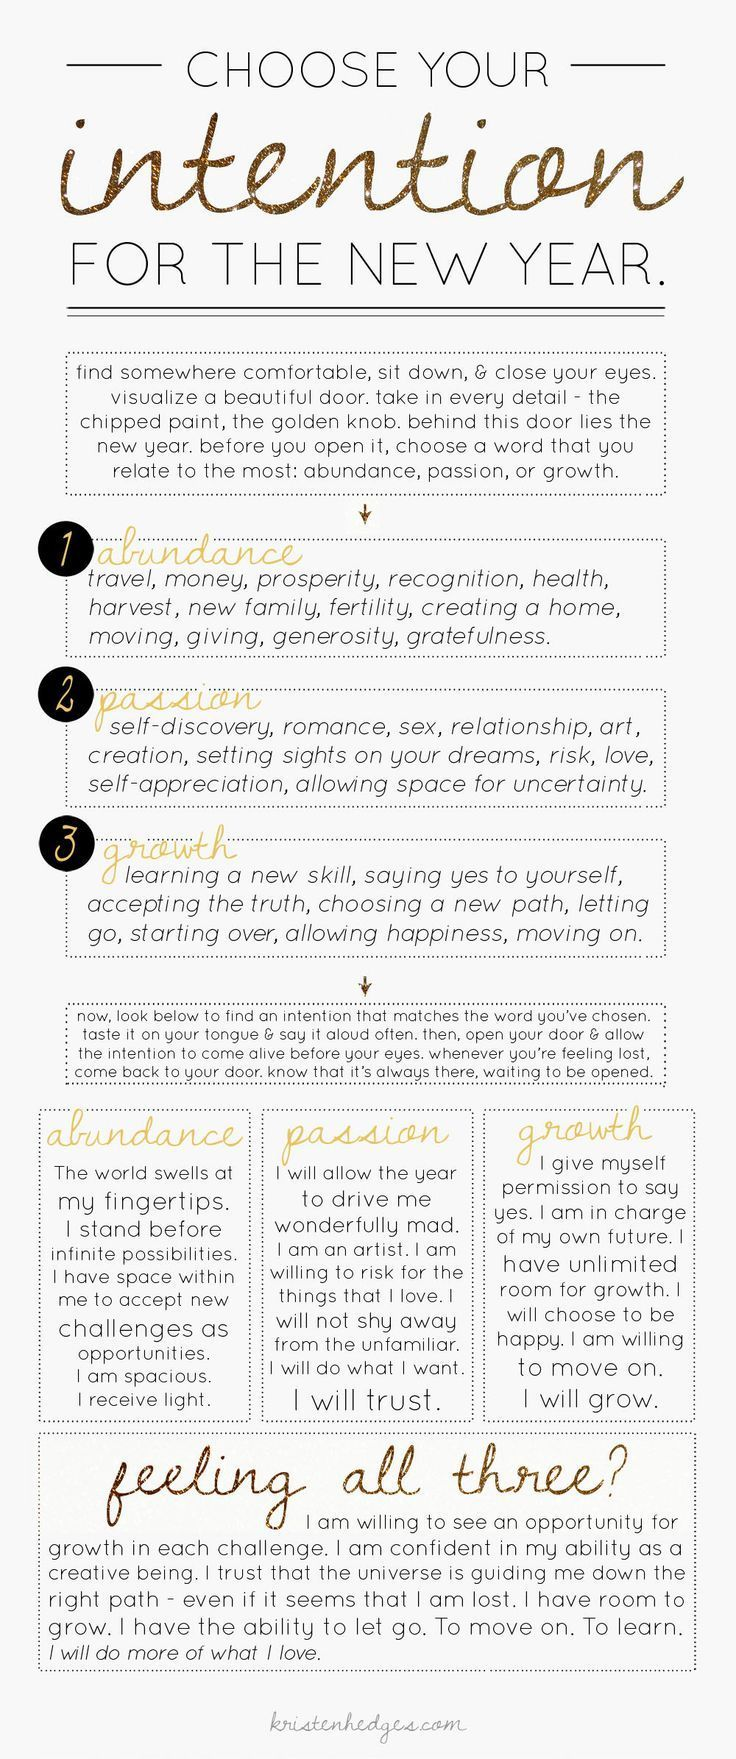 Kristen Hedges is the best! Use this guide to set your intentions ...